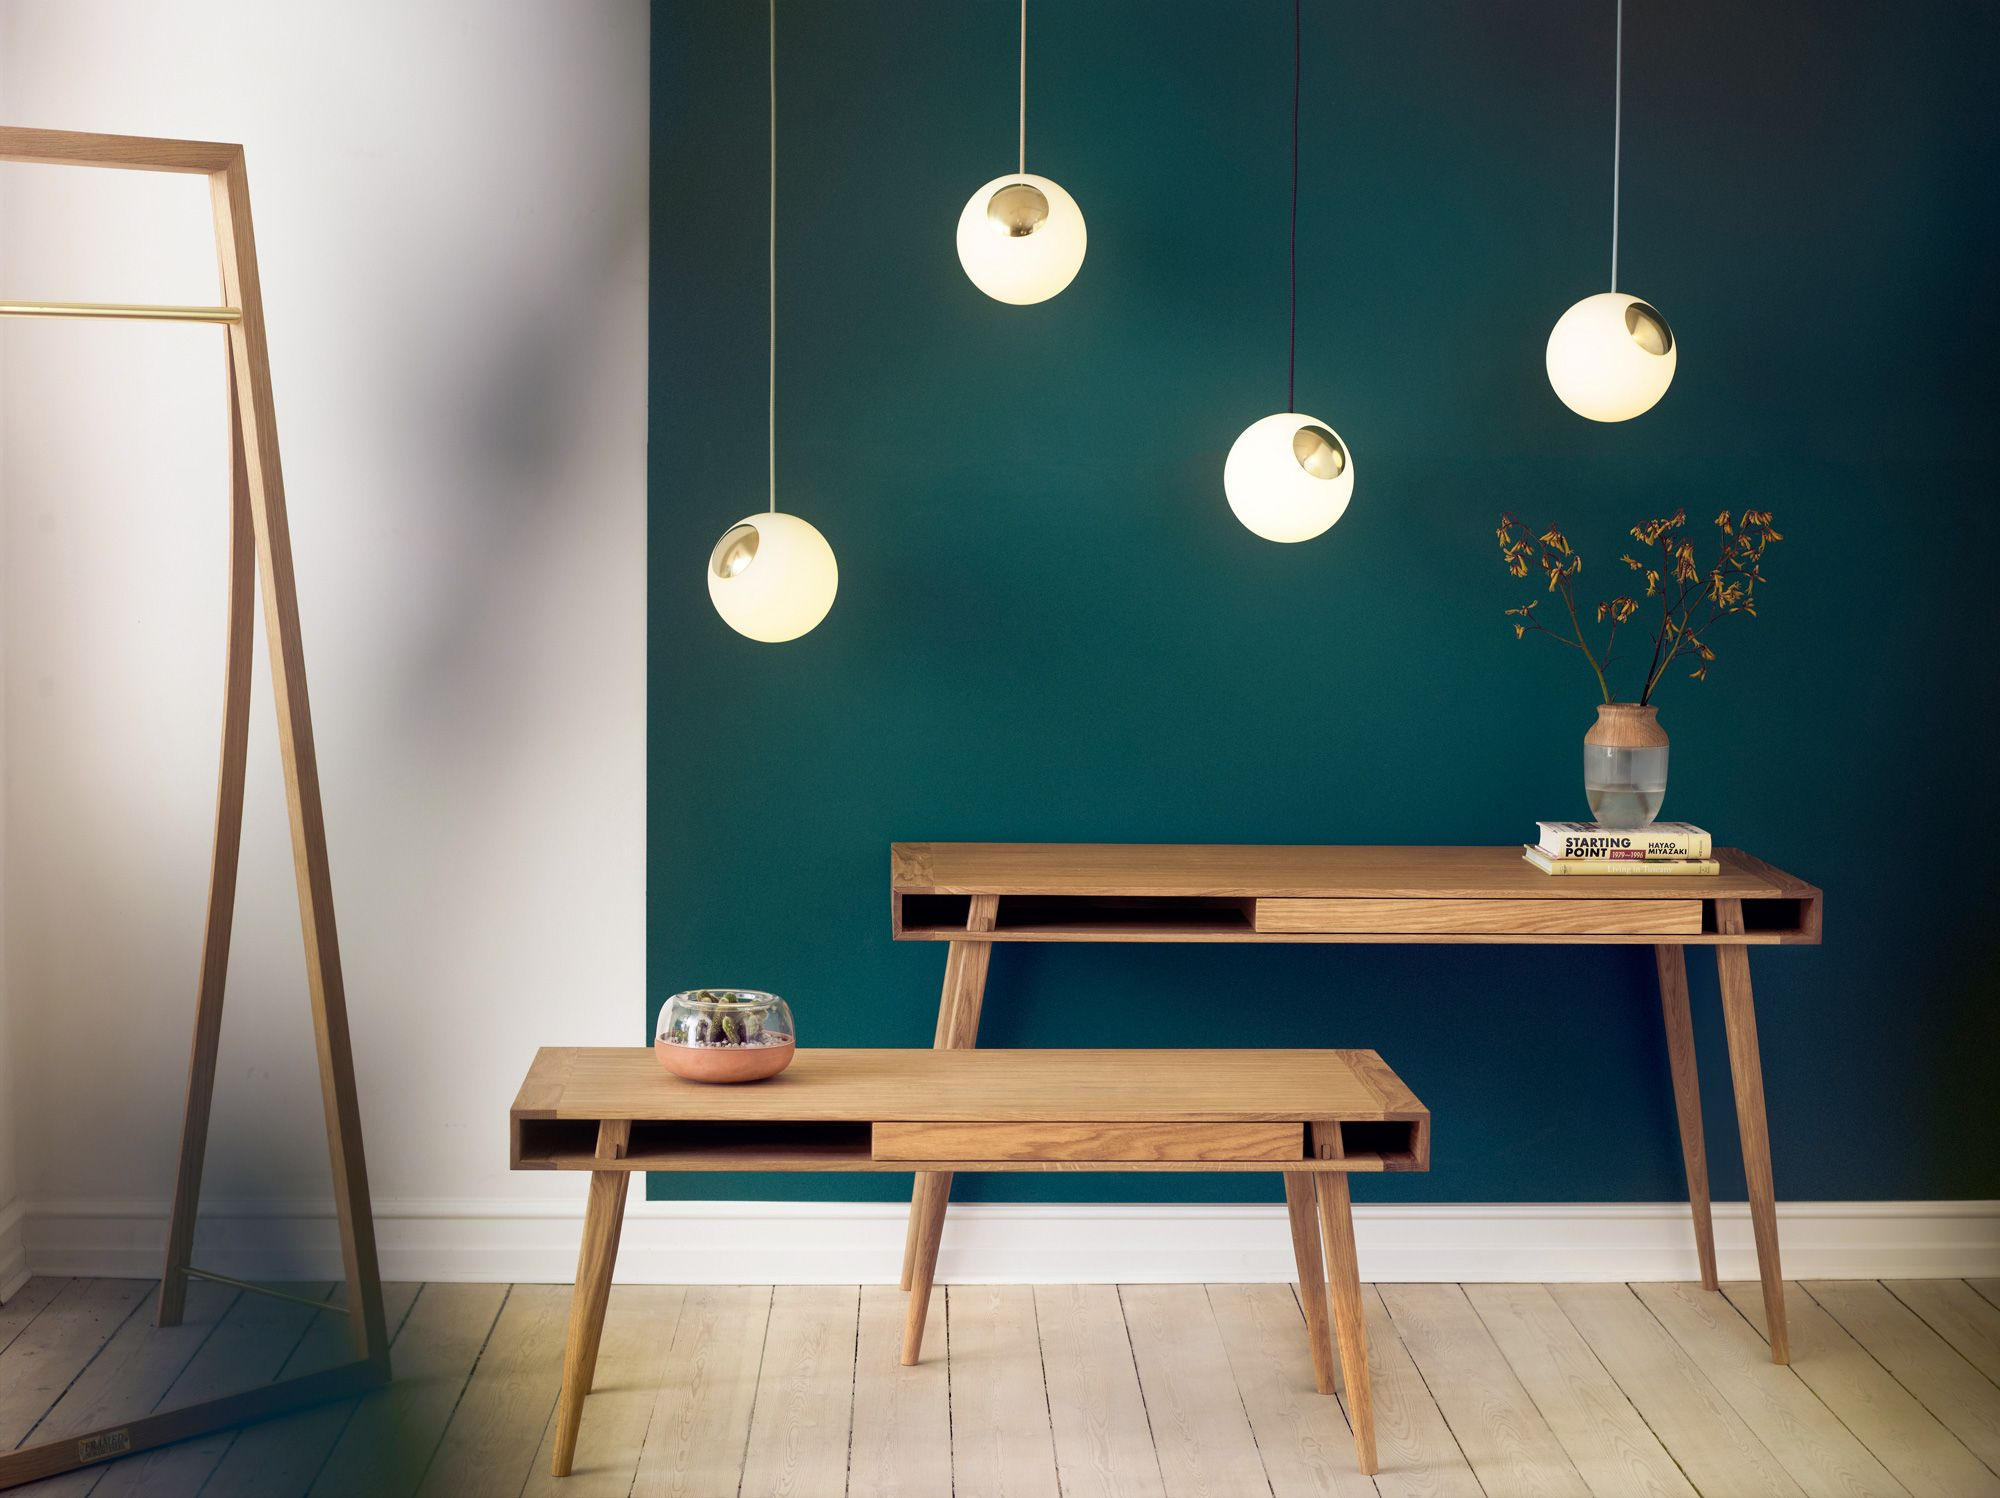 Bright Vision Is A Suspension Lamp Designed By Jonas Højgaard For Nordic  Tales, Made From Two Halves, One Half In Opal Glass And One Half In Metal.